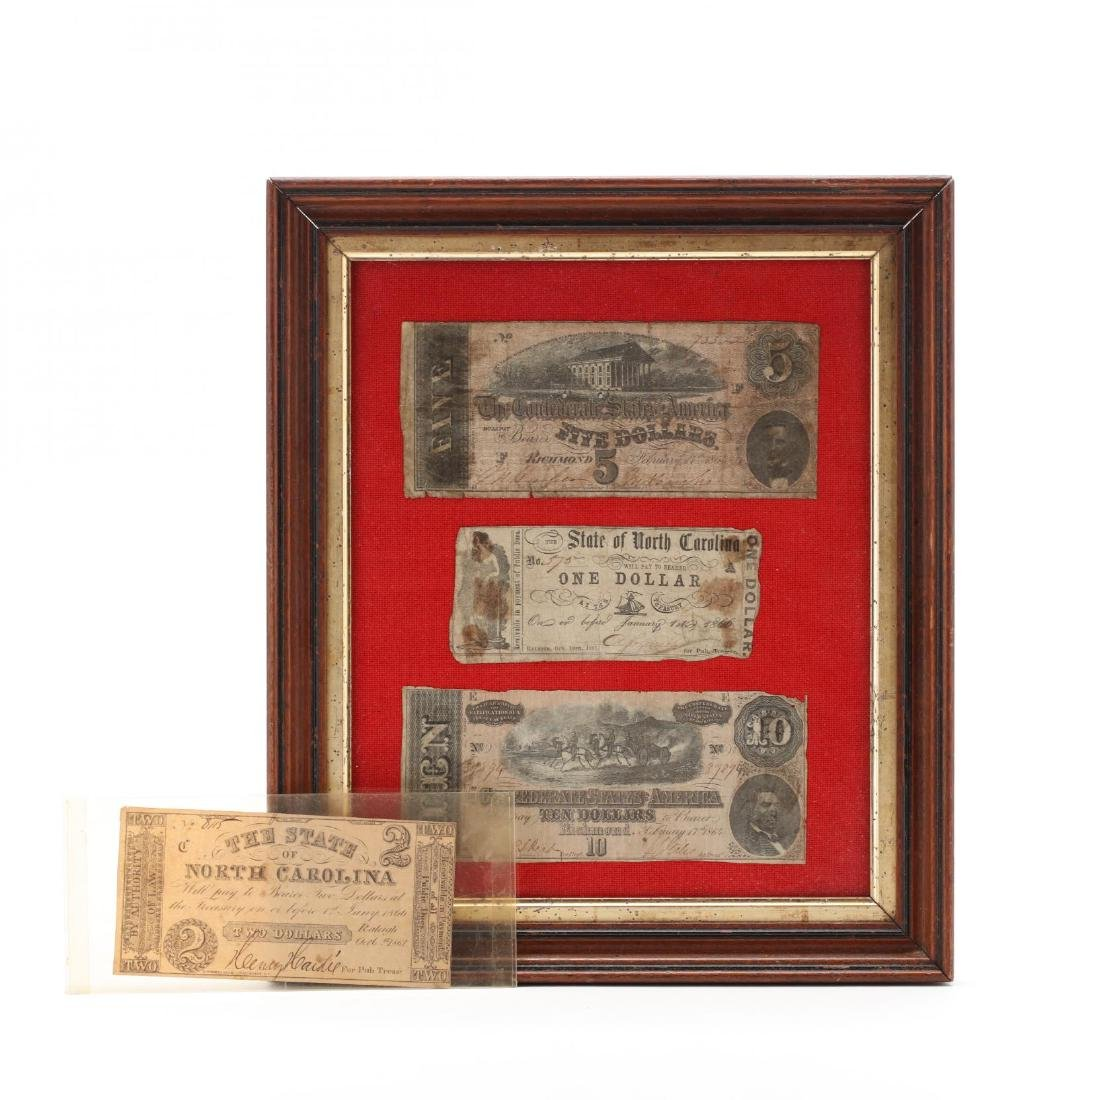 Four Pieces of Civil War Currency From North Carolina